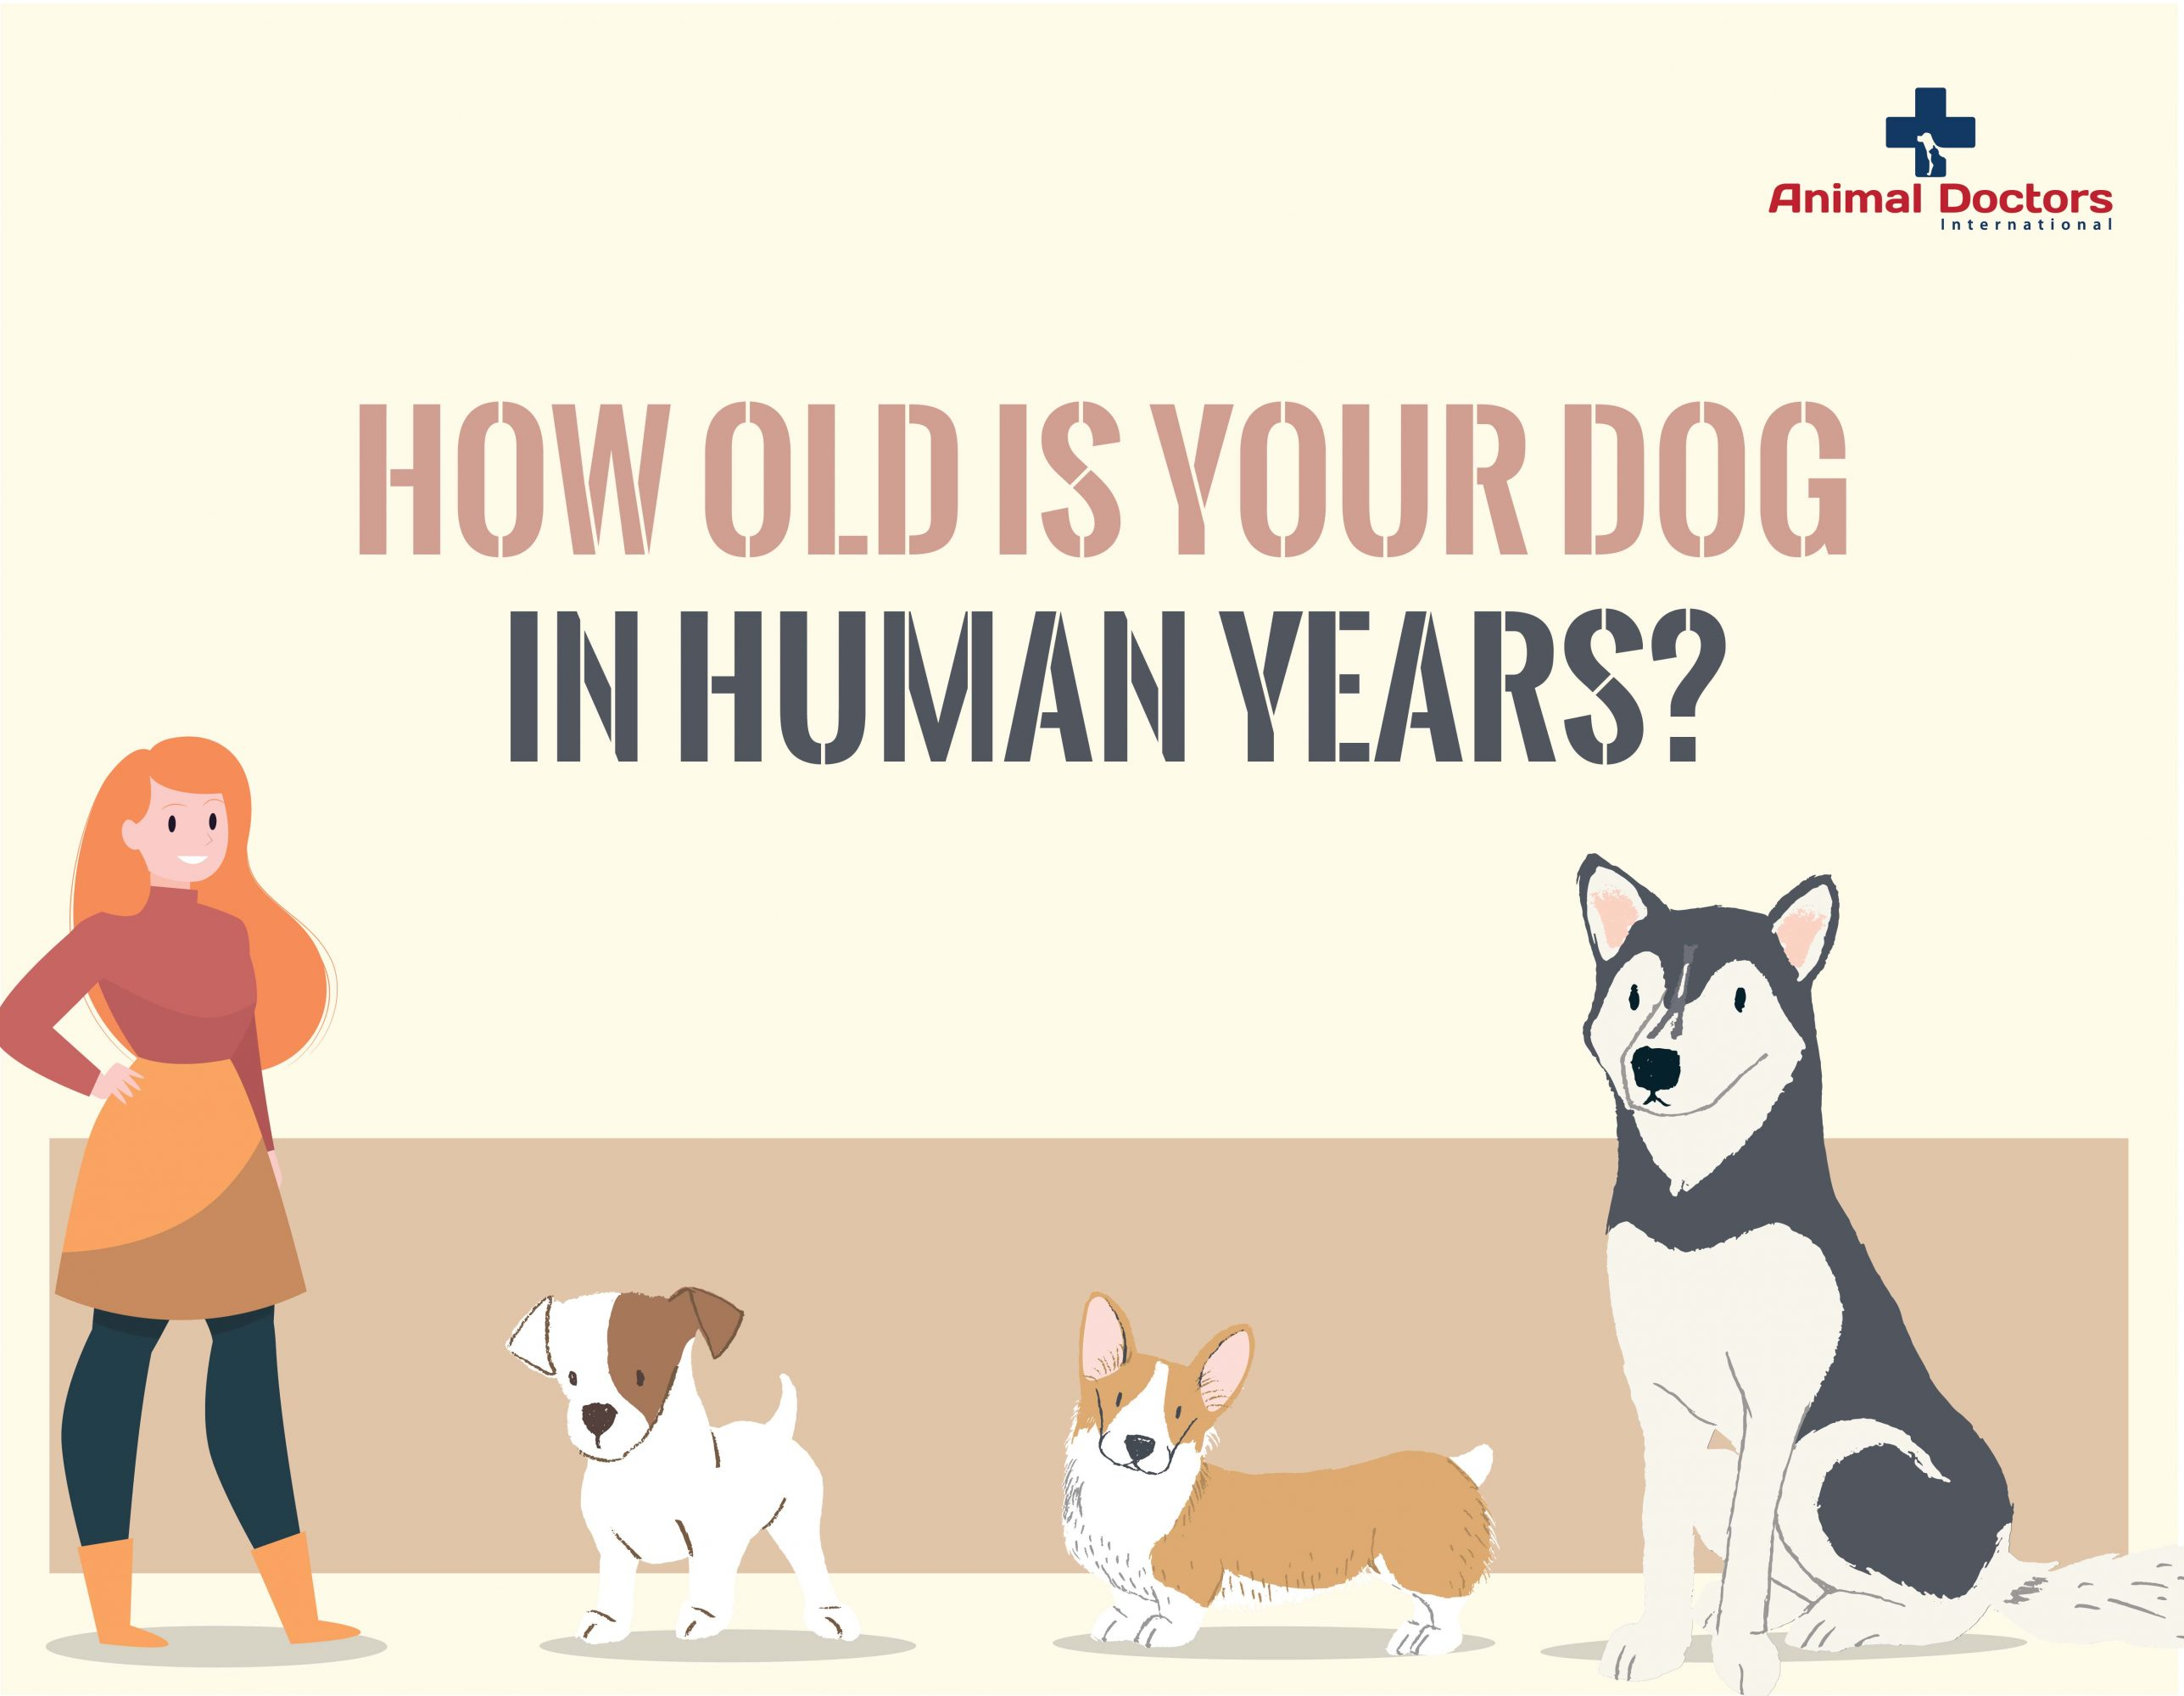 How Old Is Your Dog in Human Years?